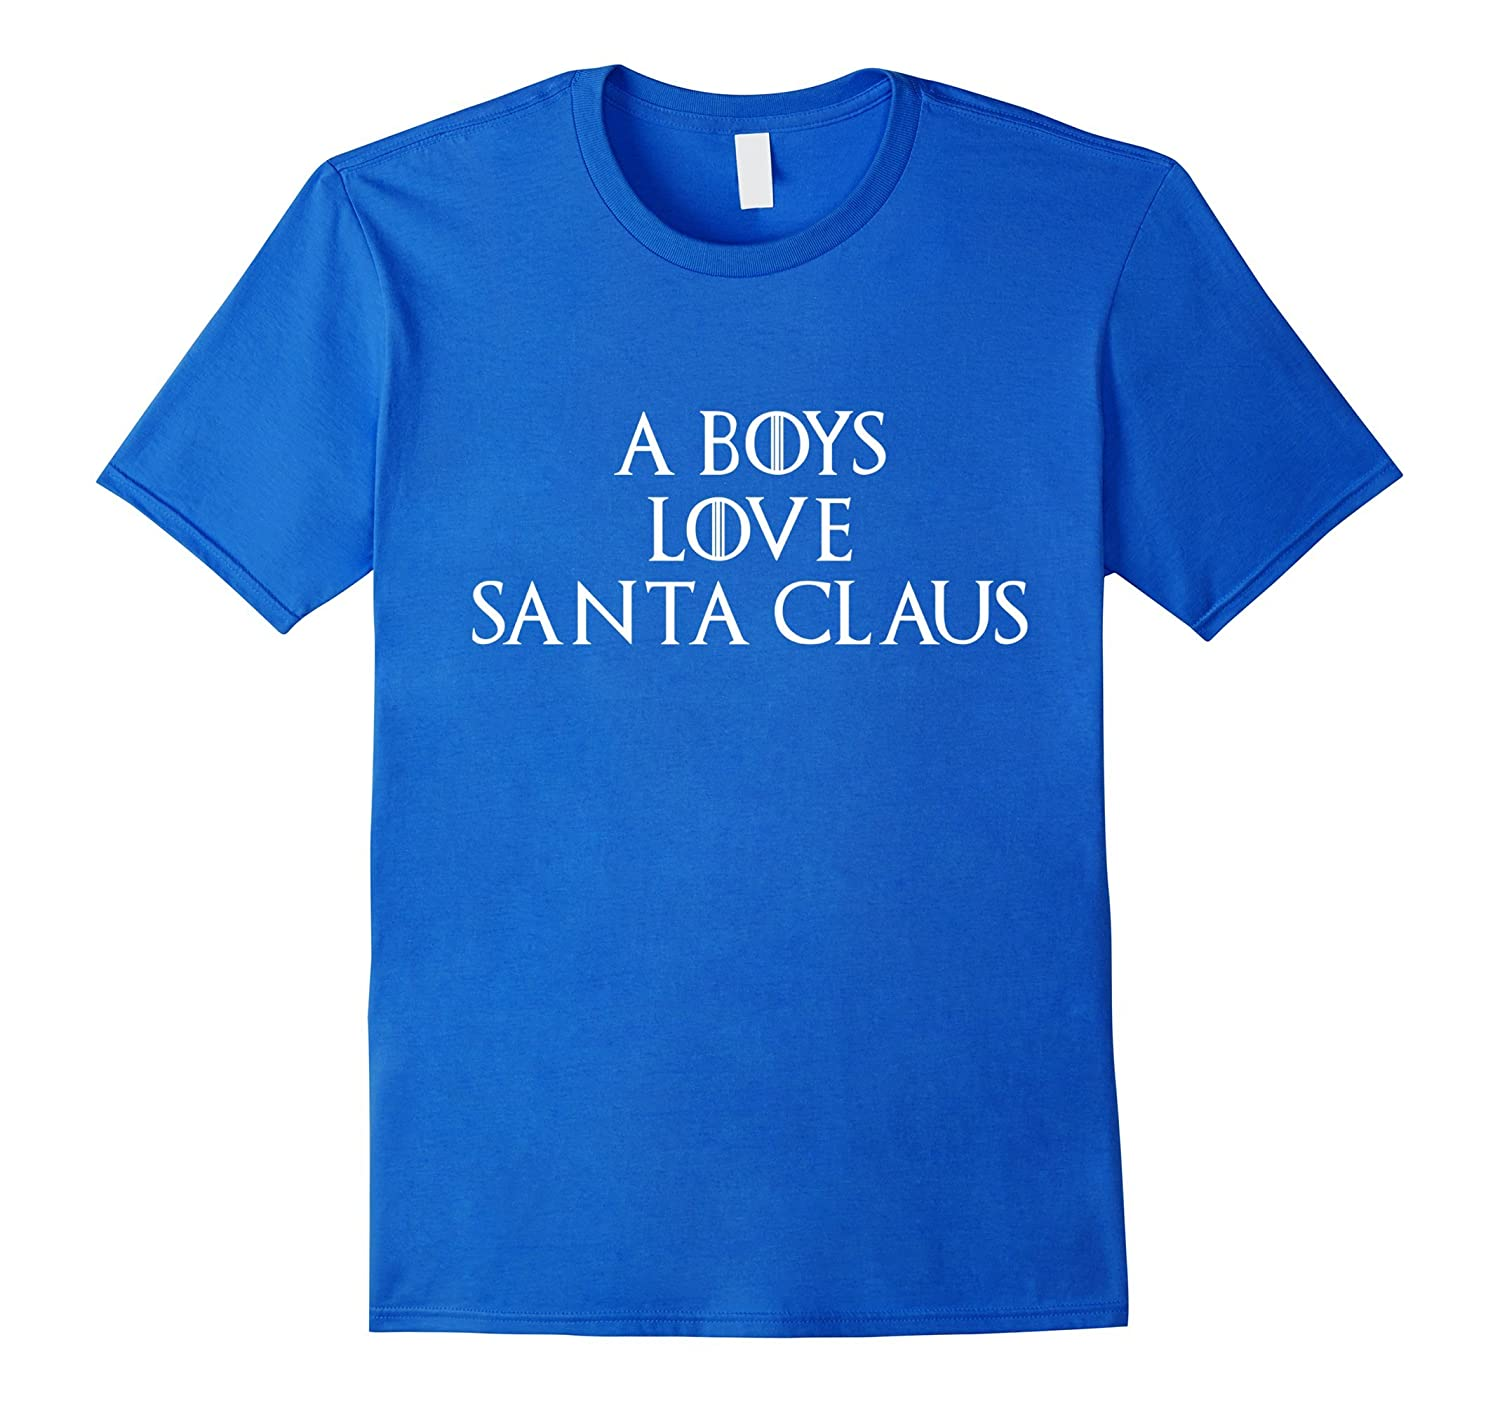 A Boys Love Santa Claus T-Shirt Awesome Christmas Gift